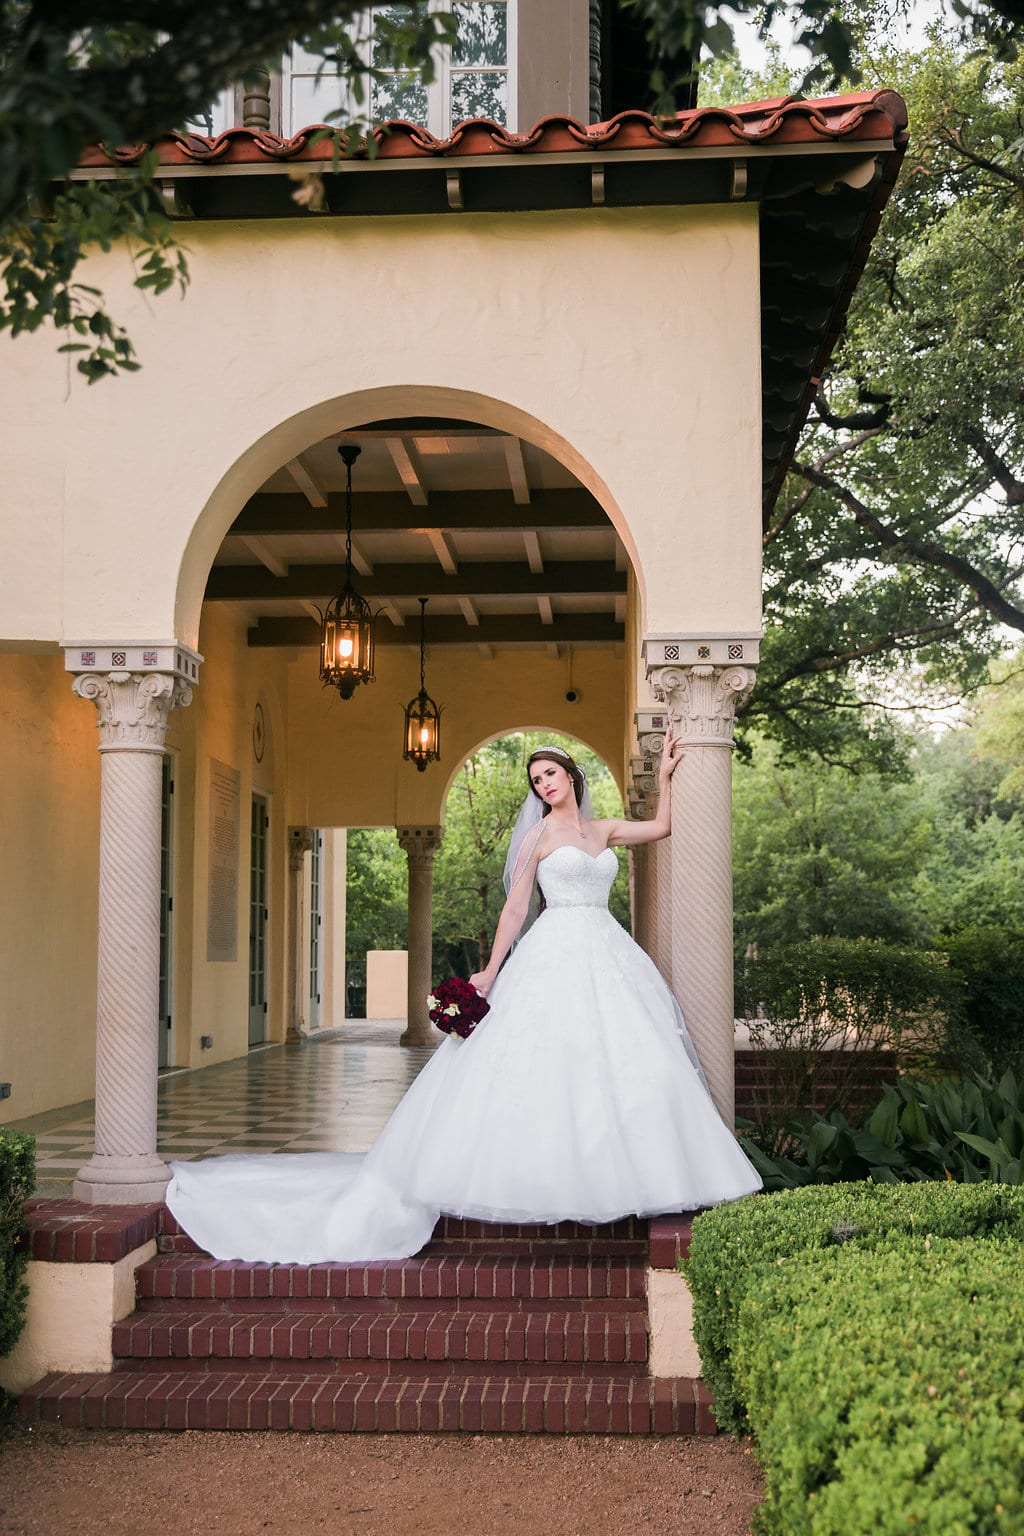 Laura's bridal at Landa Library arches and stairs ballerina pose